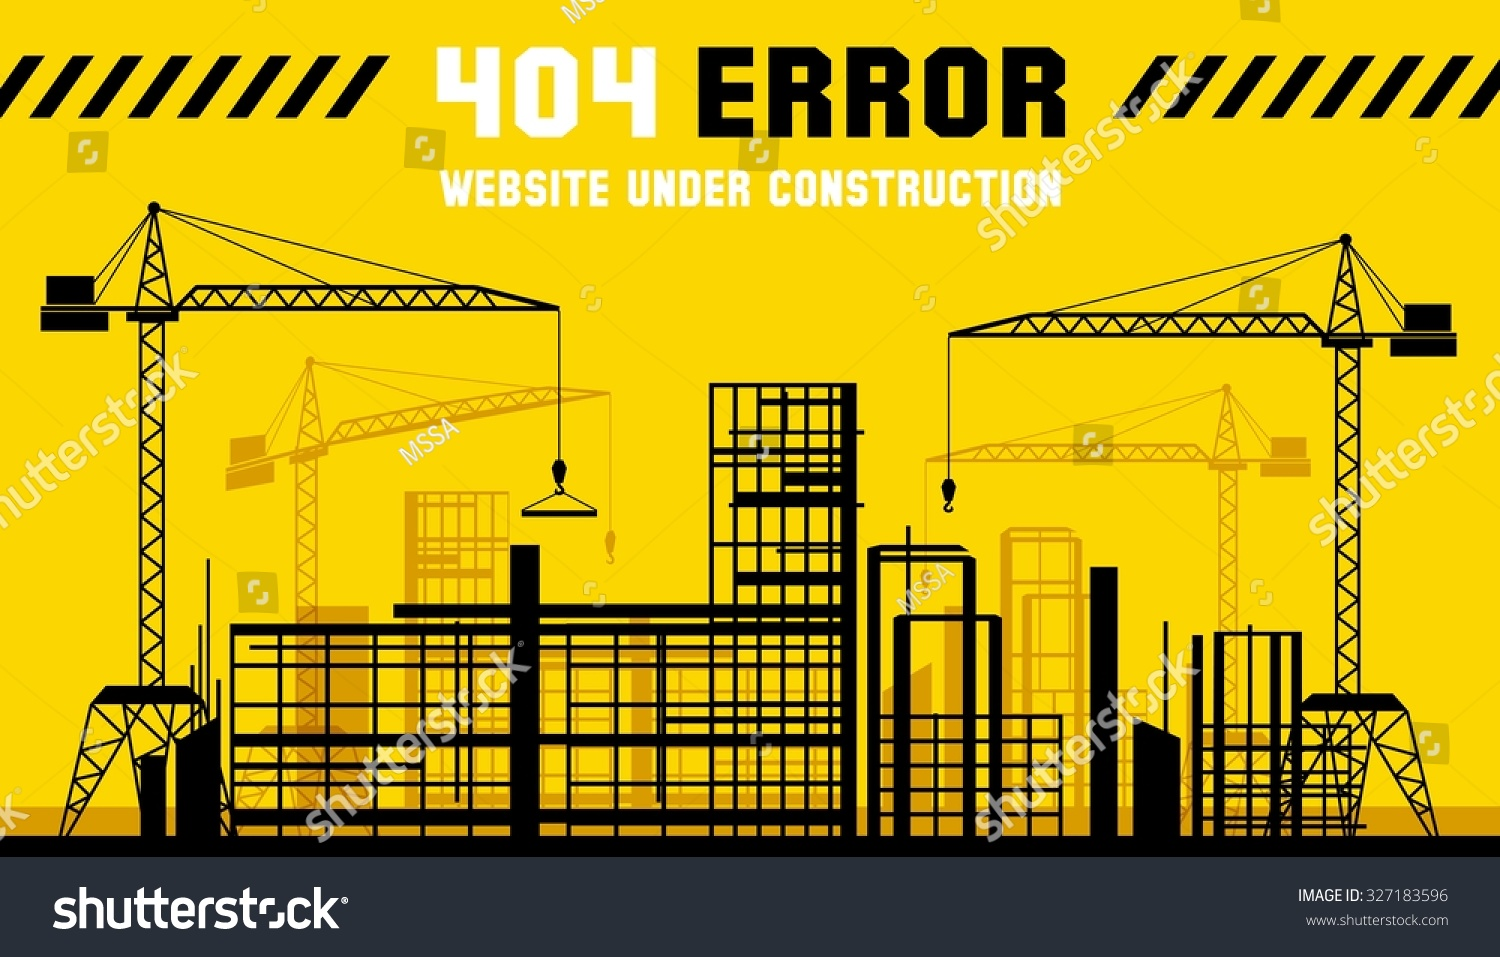 Under Construction Site 404 Page Construct Stock Vector Royalty Boat Electrical Wiring Diagrams Not Found Error Ever Web Banner